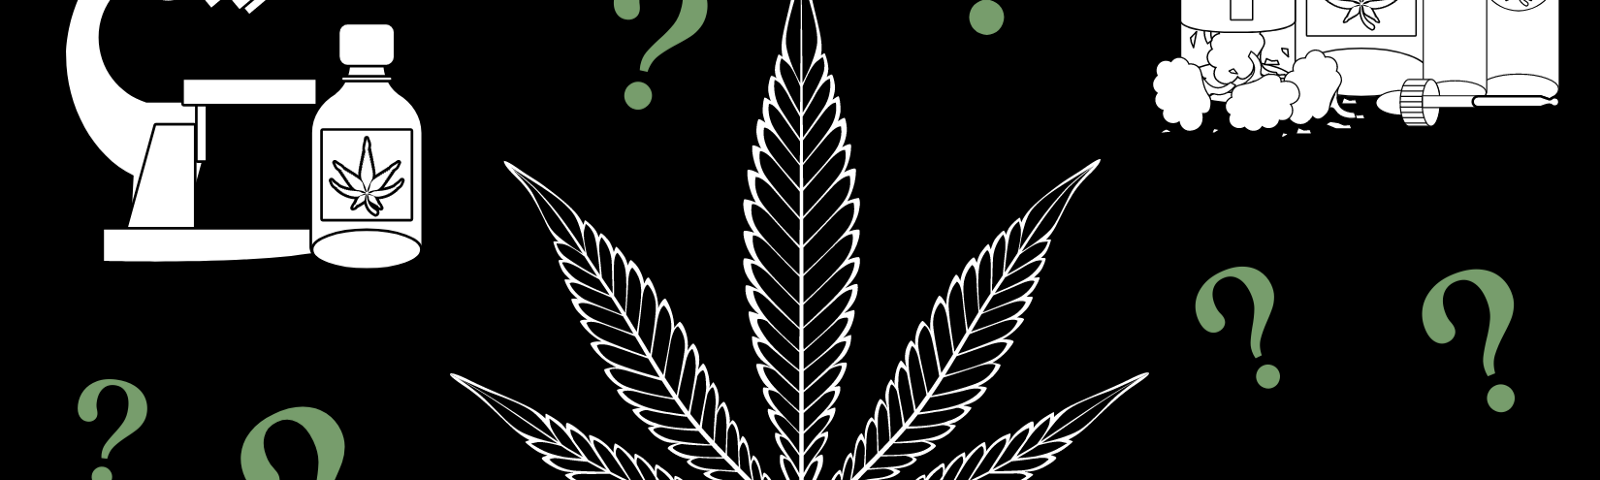 Medicine bottles and cannabis leaves with question marks